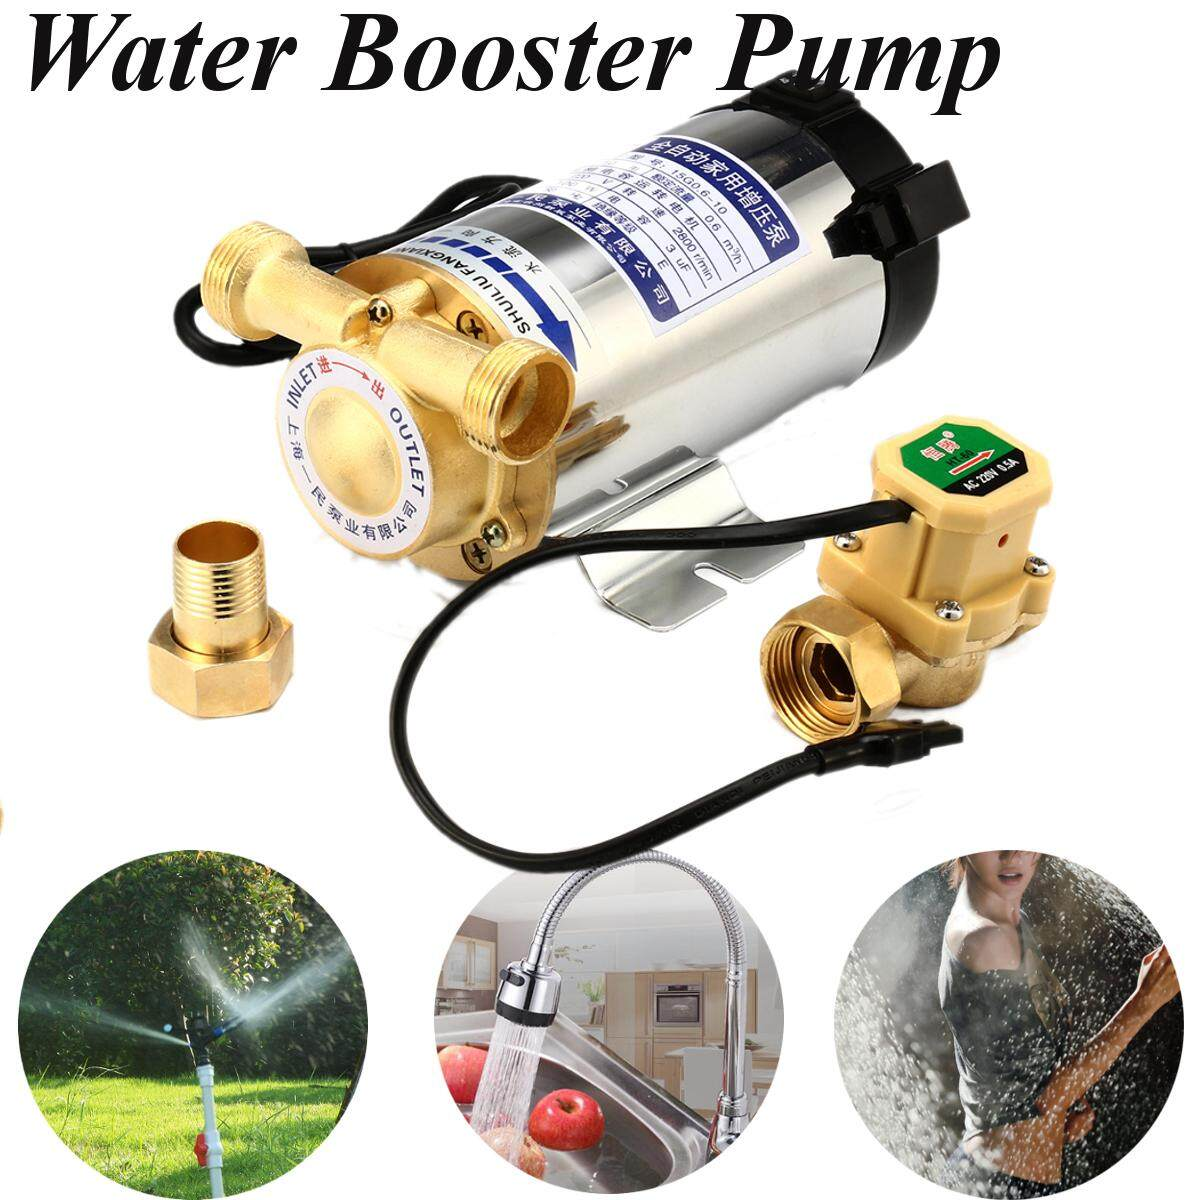 220v 150w Electronic Automatic Home Shower Washing Machine Water Booster Pump By Glimmer.